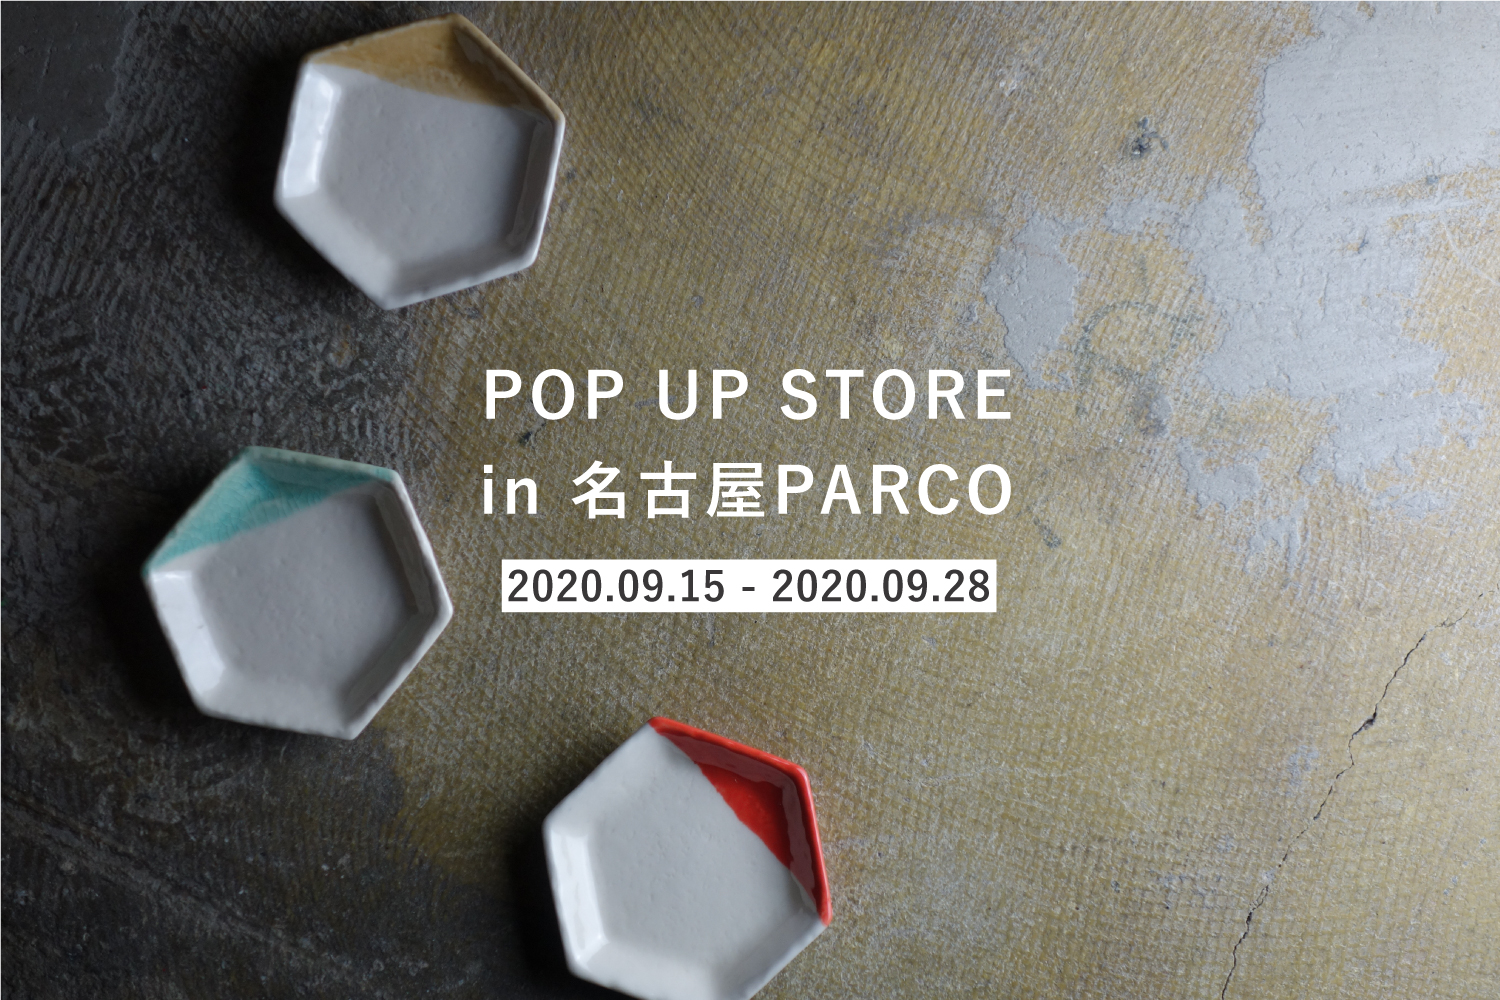 POP UP STORE in 名古屋PARCO